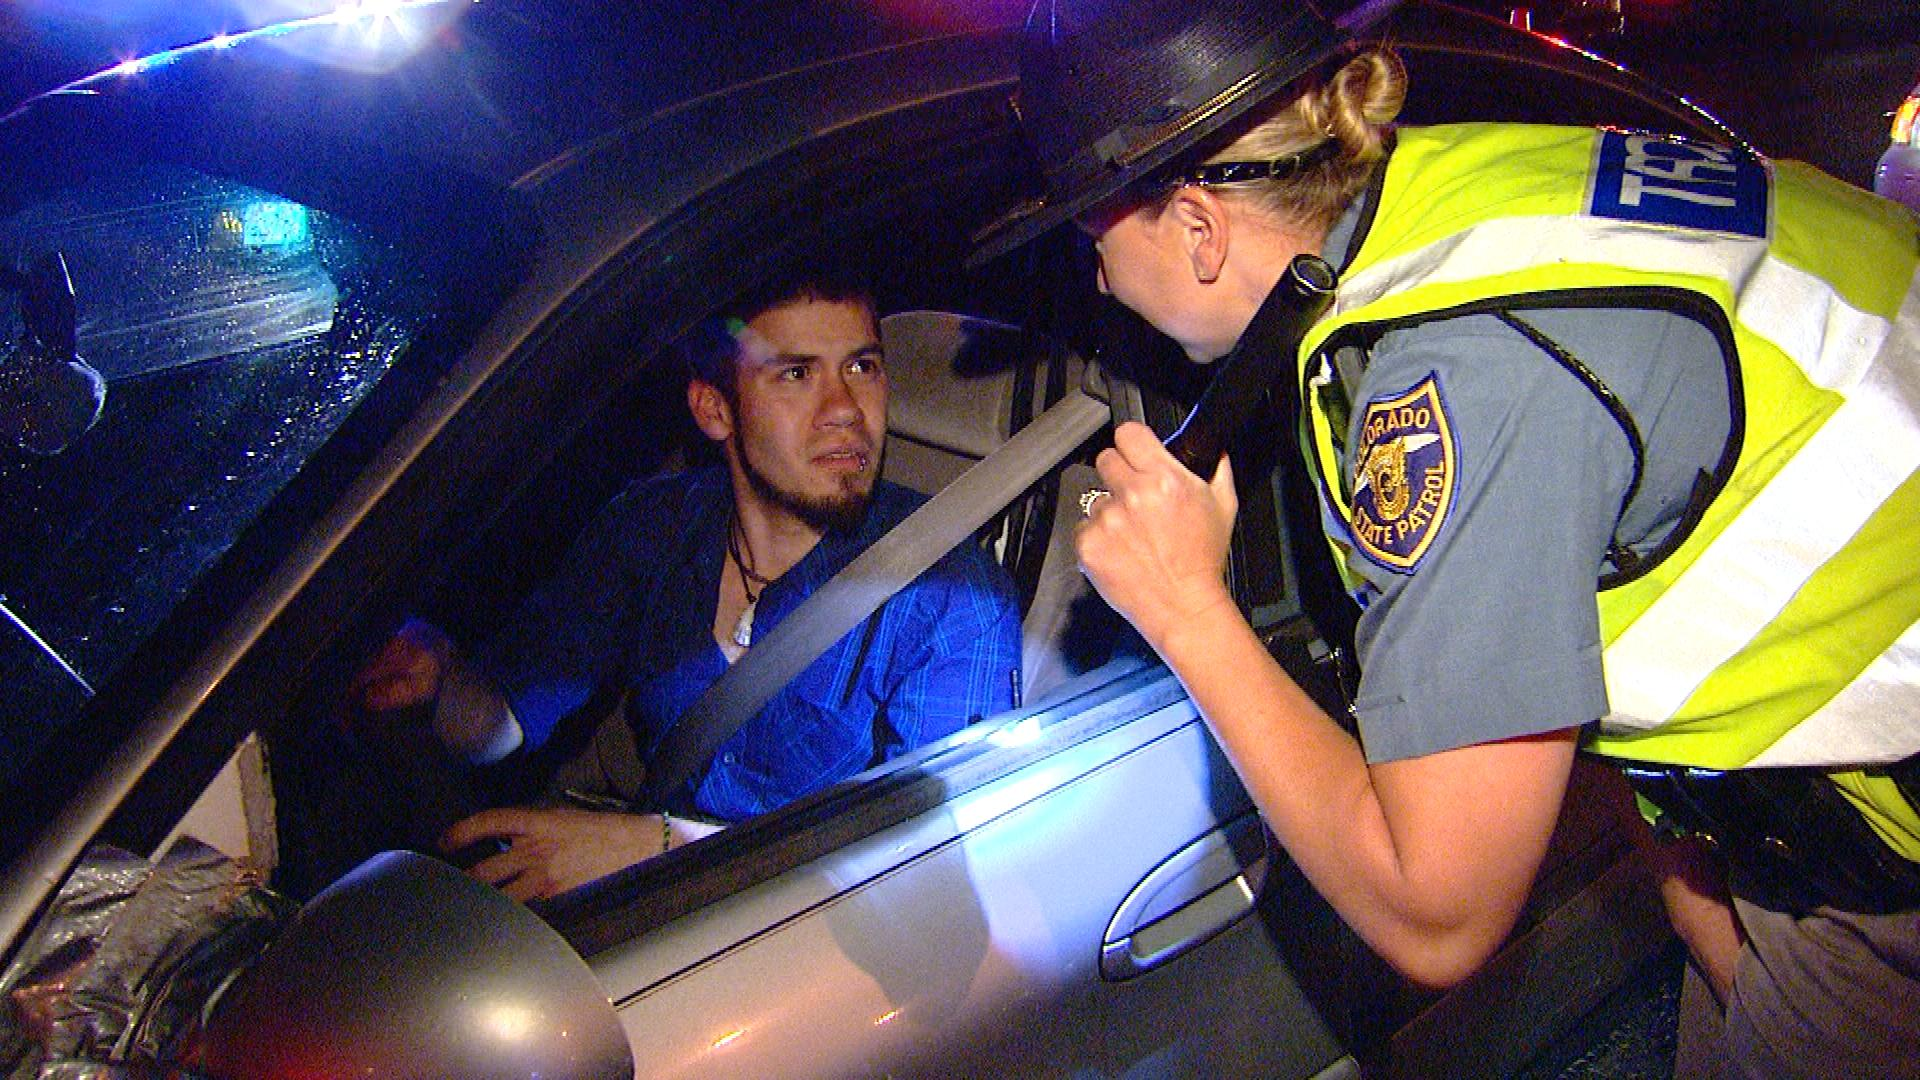 An image from a police checkpoint in 2013 (credit: CBS)